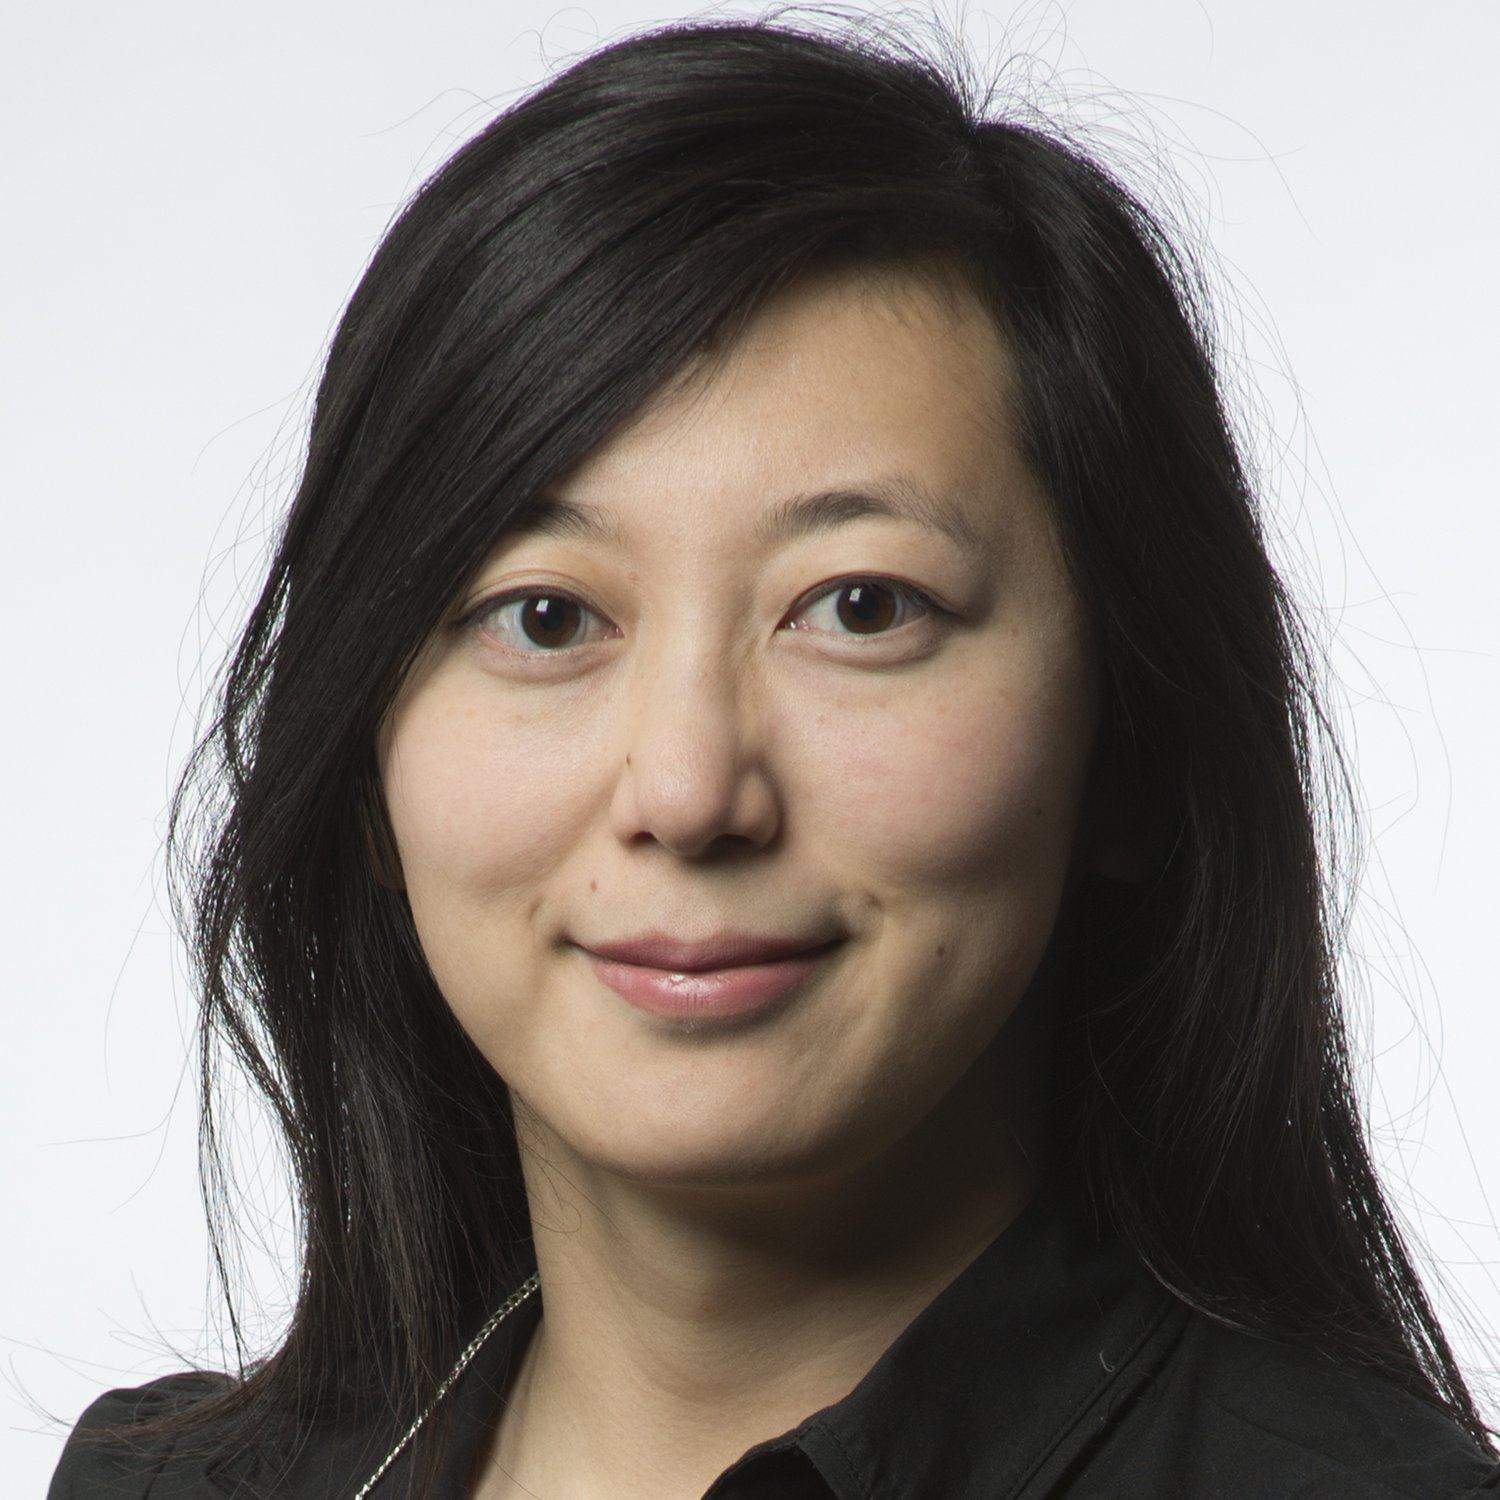 Image: Shanshan Dong of NBC News.